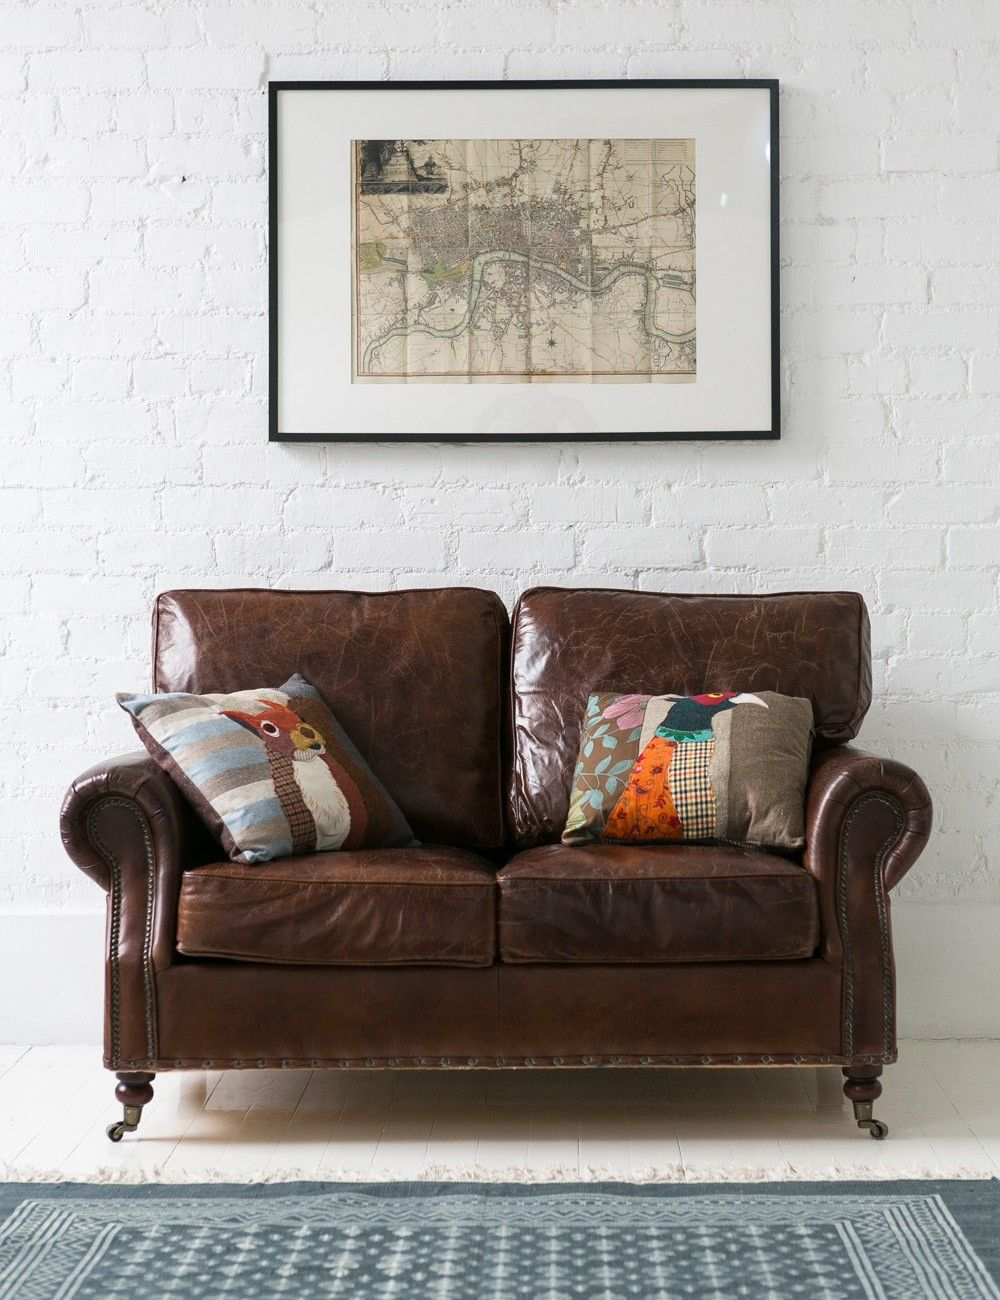 Vintage Leather Sofa 2 Seater Home Shop The Look Vintage